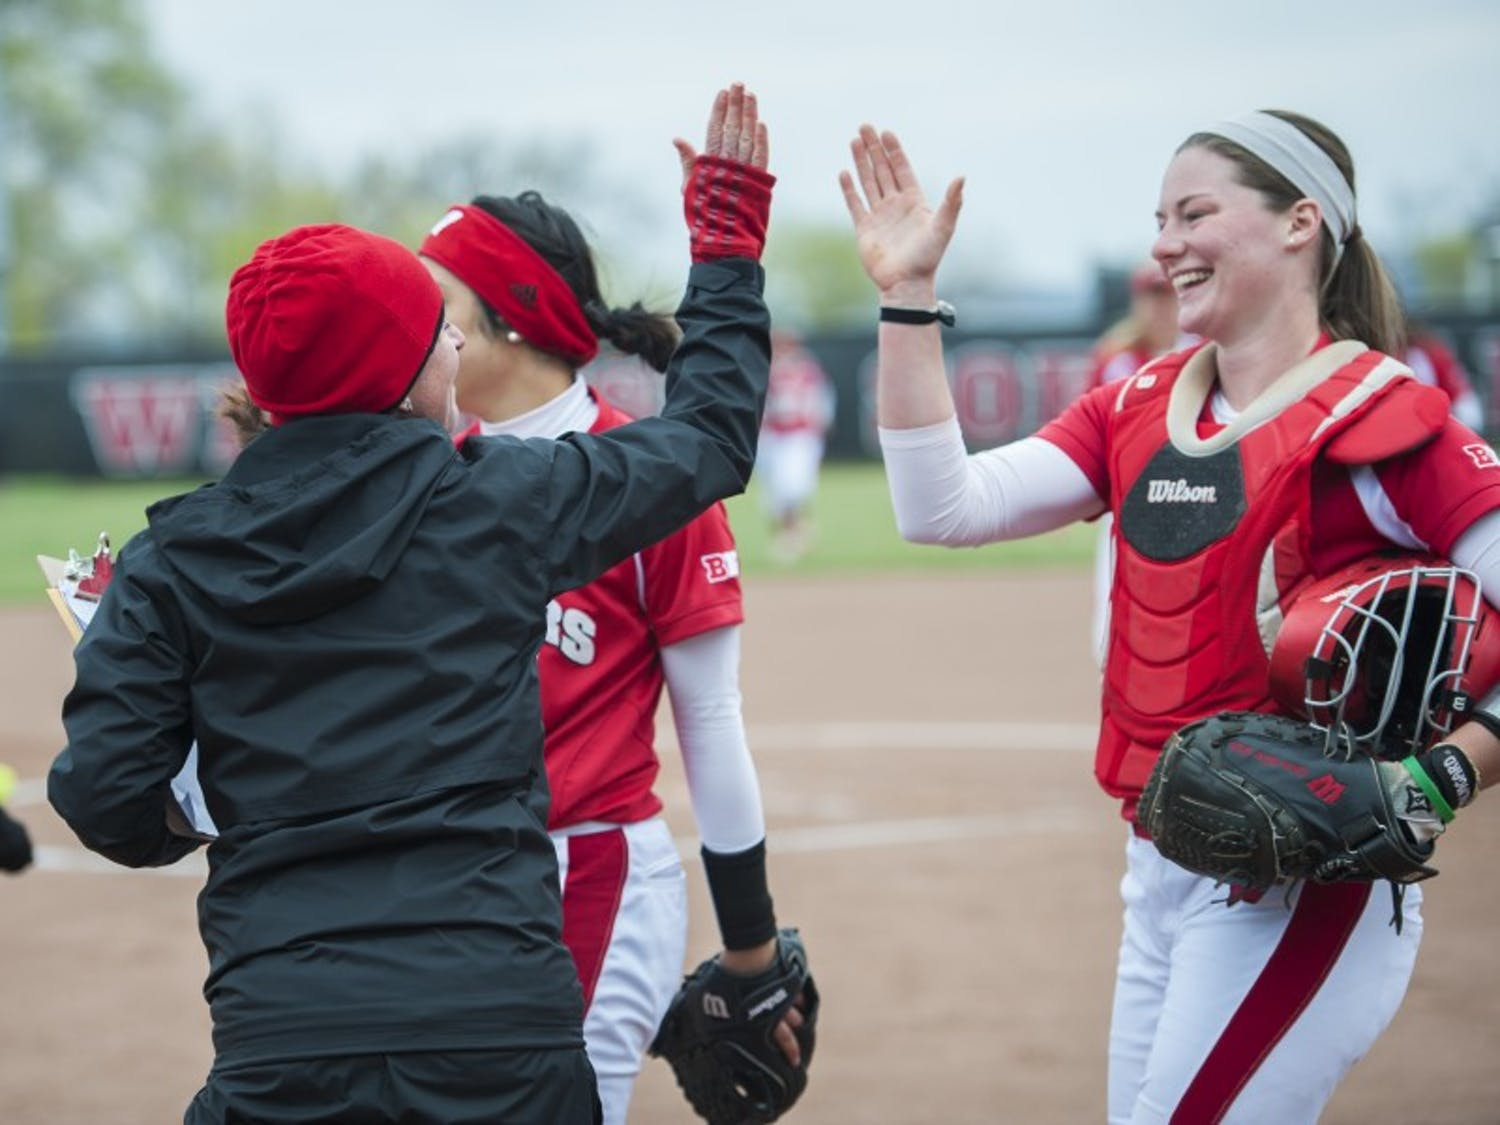 Wisconsin split its first home doubleheader of the year Wednesday at Goodman Diamond.